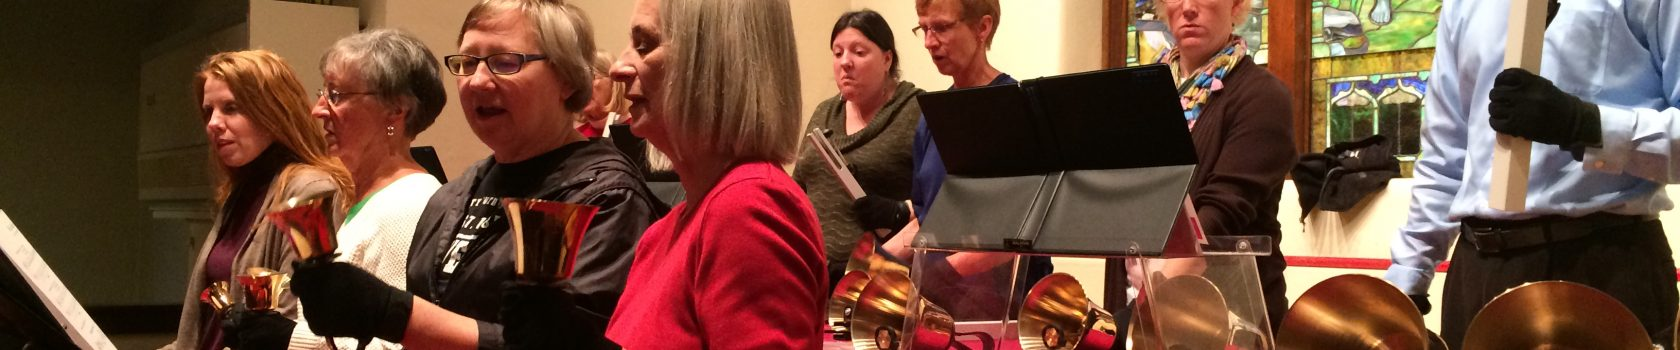 A handbell choir stands playing their bells.